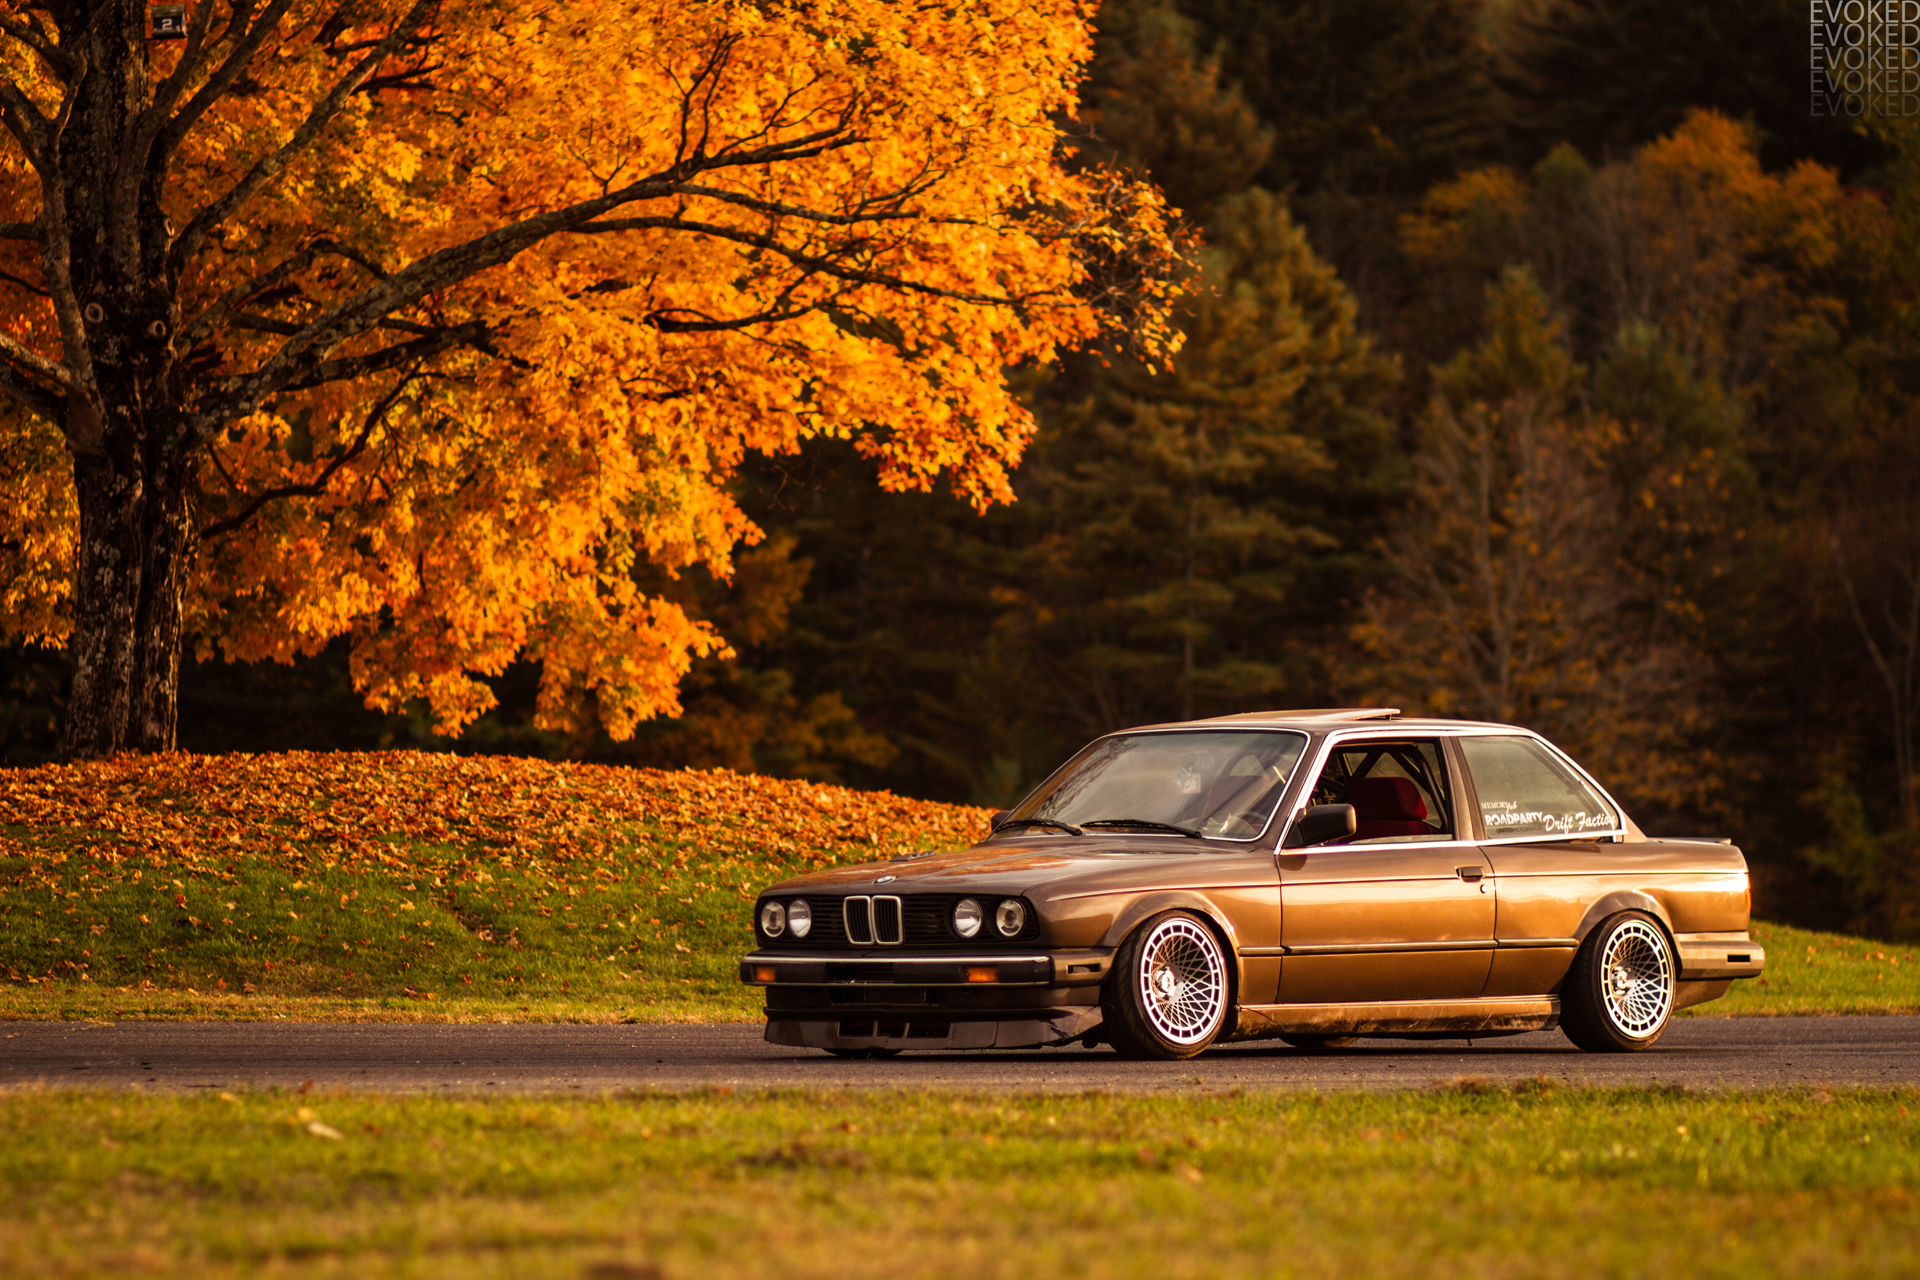 Cute Black Wallpaper Bmw E30 Wallpapers Archives Page 2 Of 2 Hd Desktop